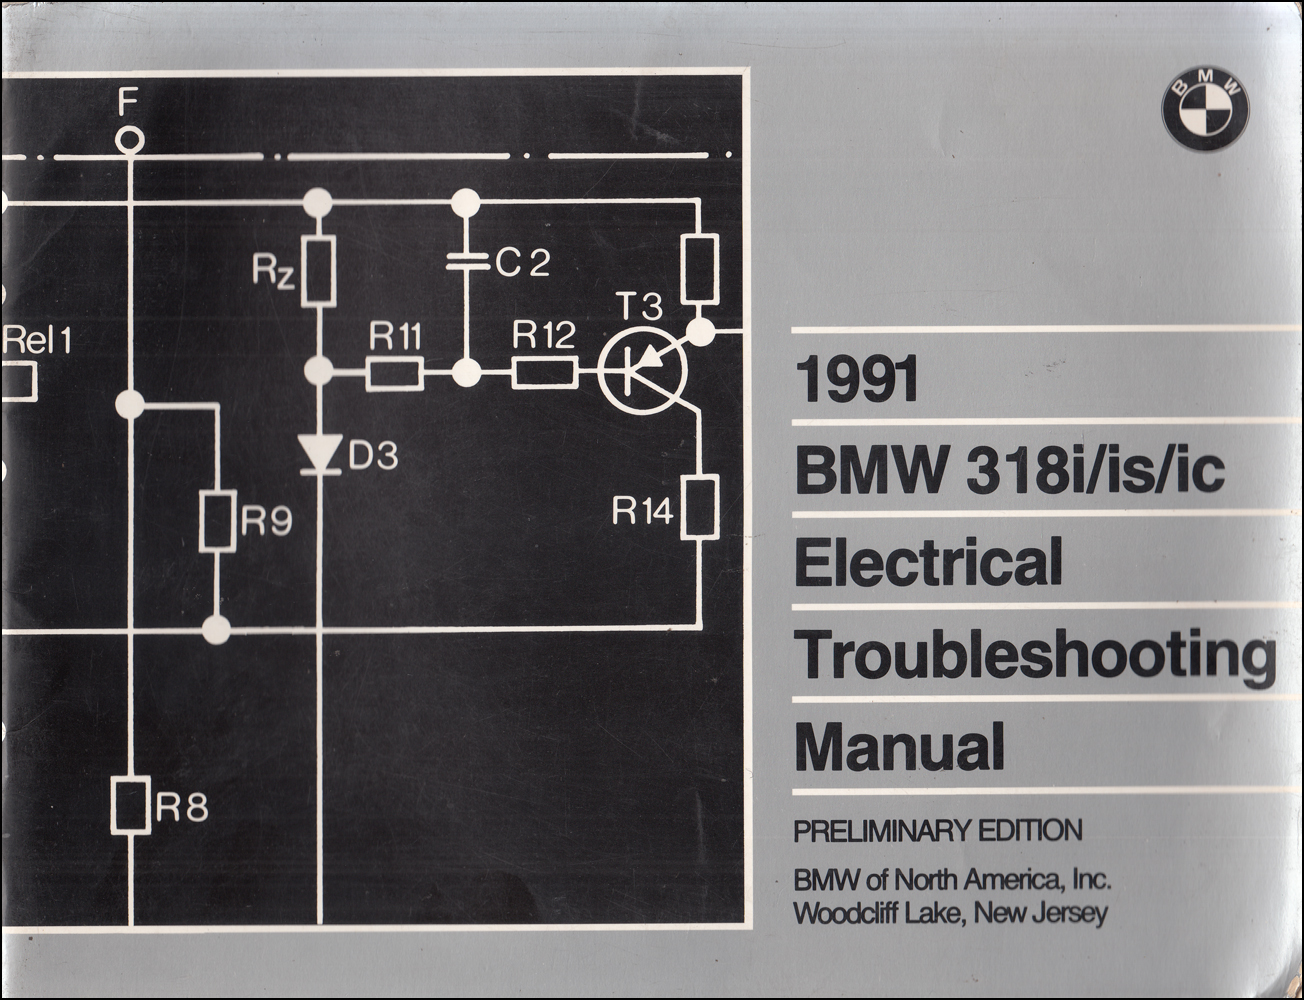 1991 BMW 318i/is/ic Electrical Troubleshooting Manual Preliminary Edition